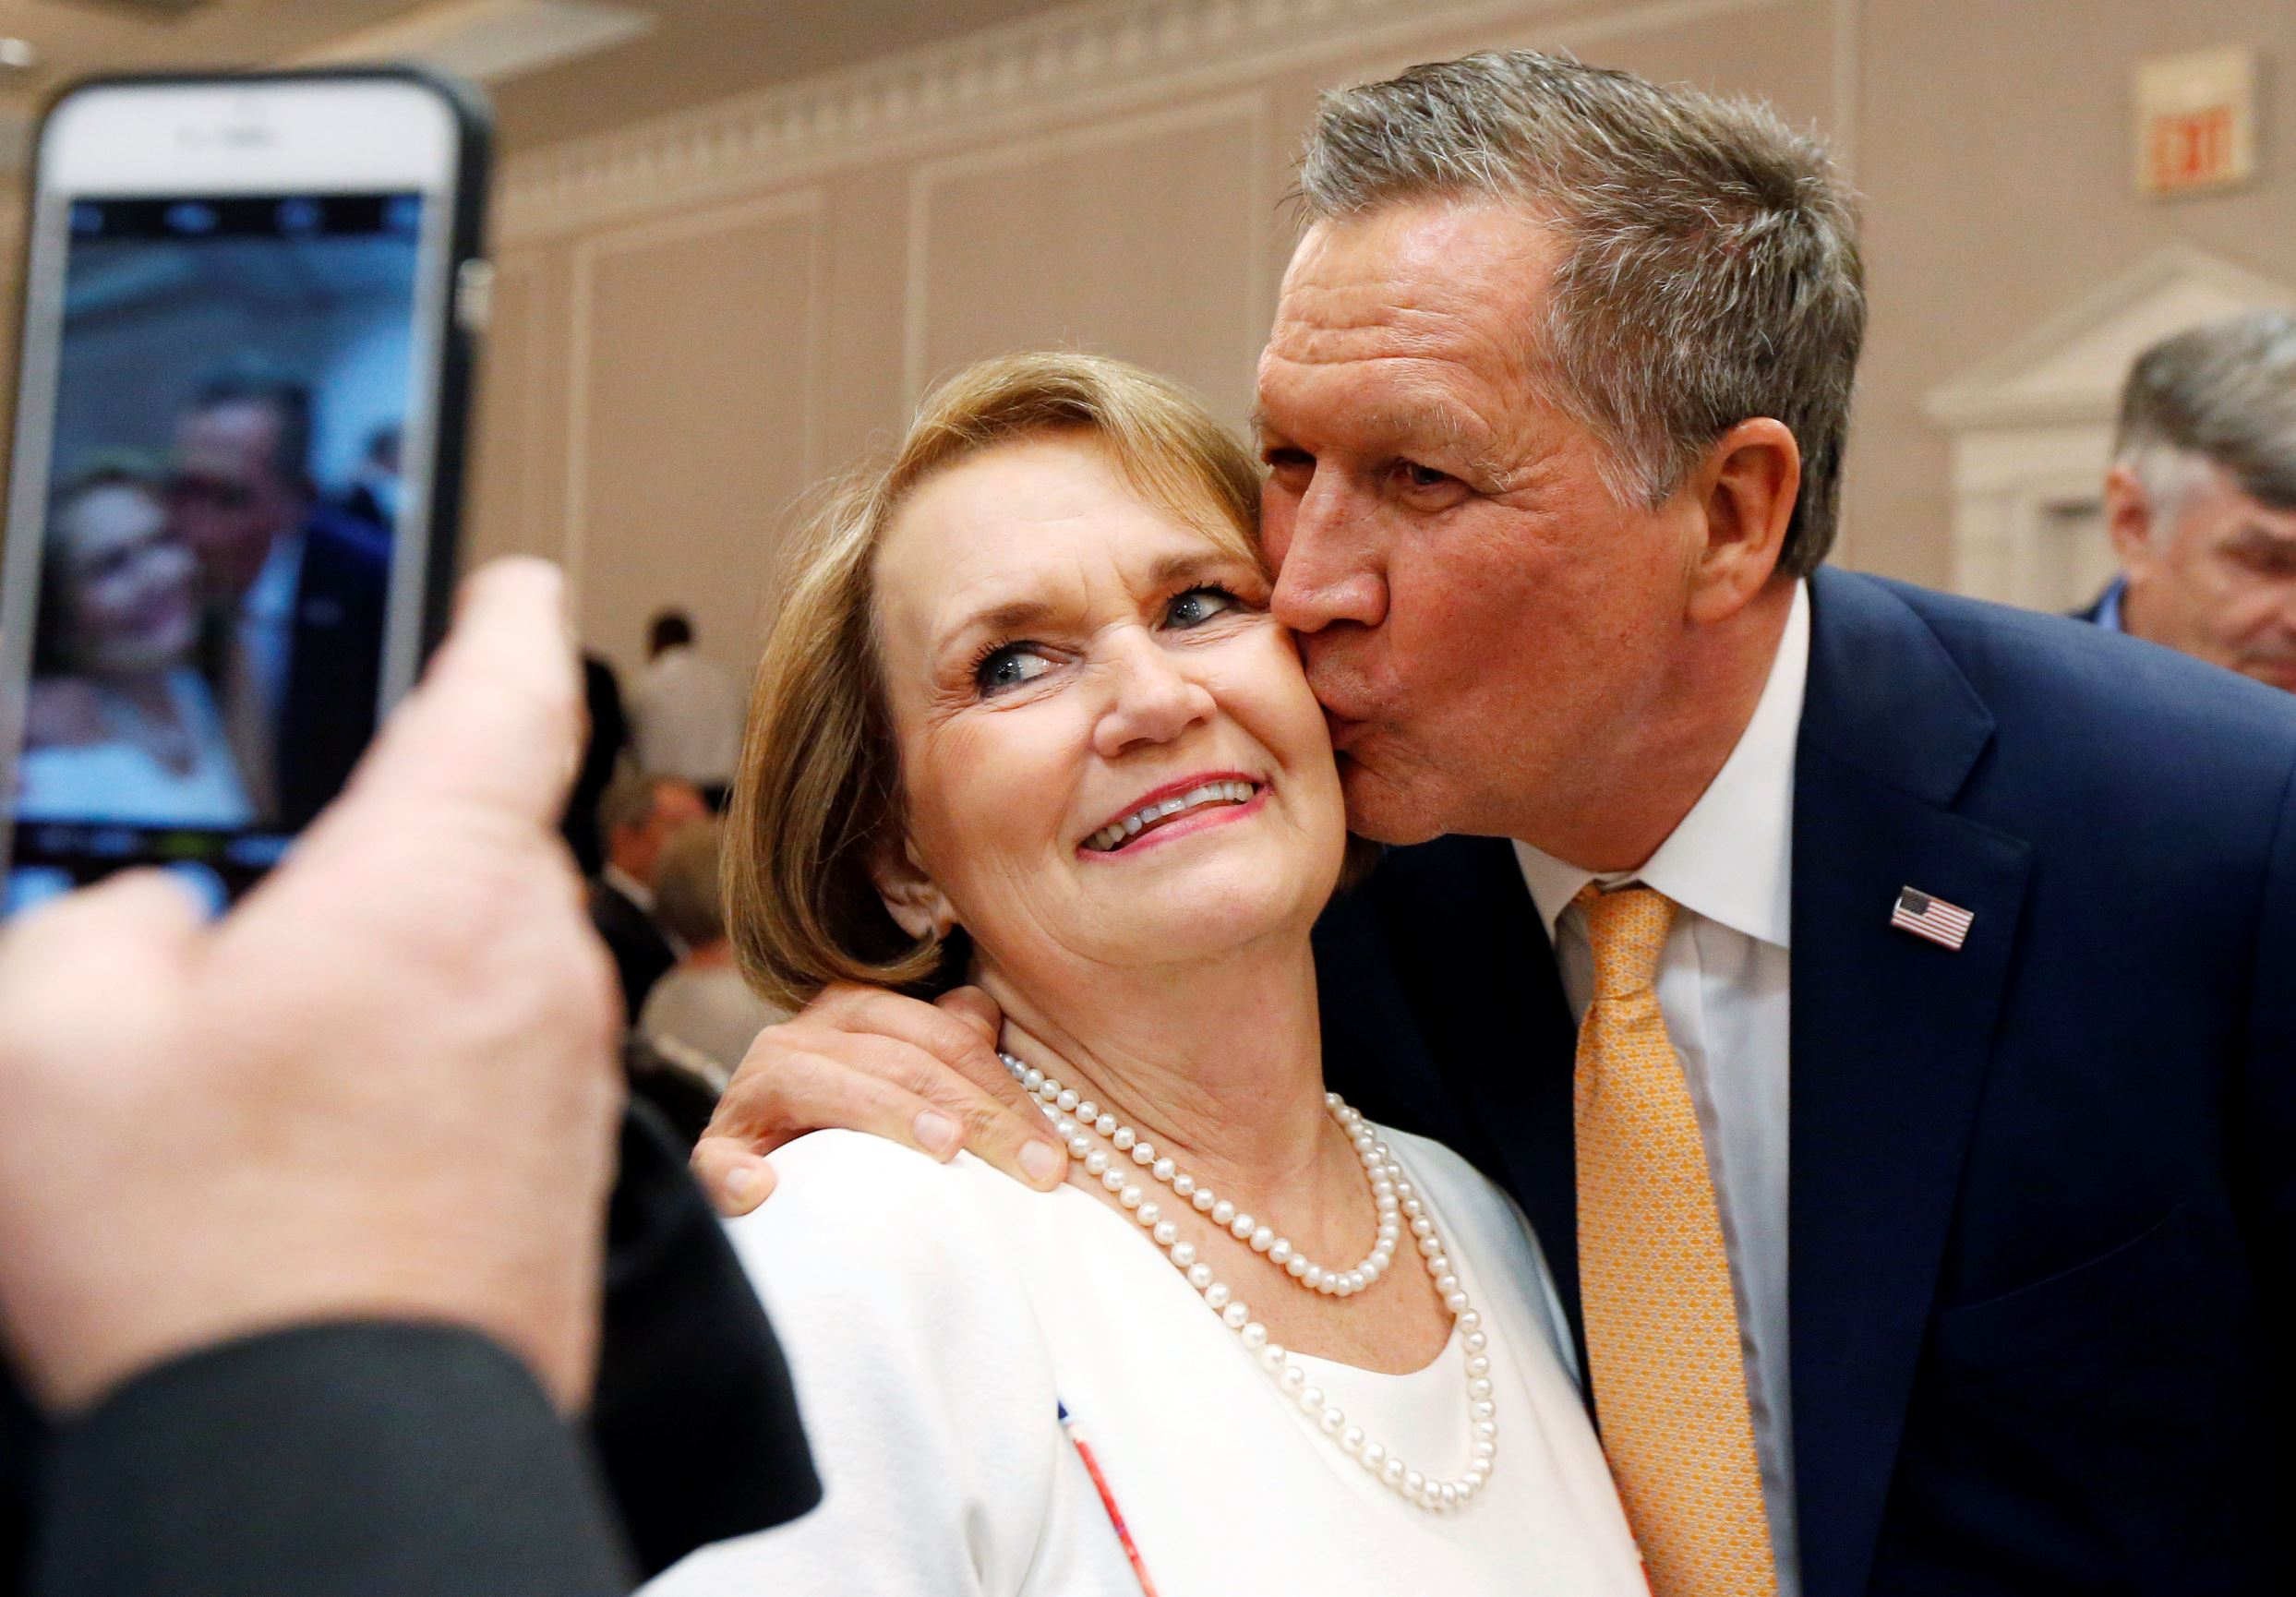 Republican presidential candidate Ohio Gov. John Kasich kisses the cheek of Kay Ward of Louisville, Miss., as she has her photo taken prior to addressing a Central Mississippi Republican Party fund raising dinner in Jackson, Miss., Tuesday, March 1, 2016.